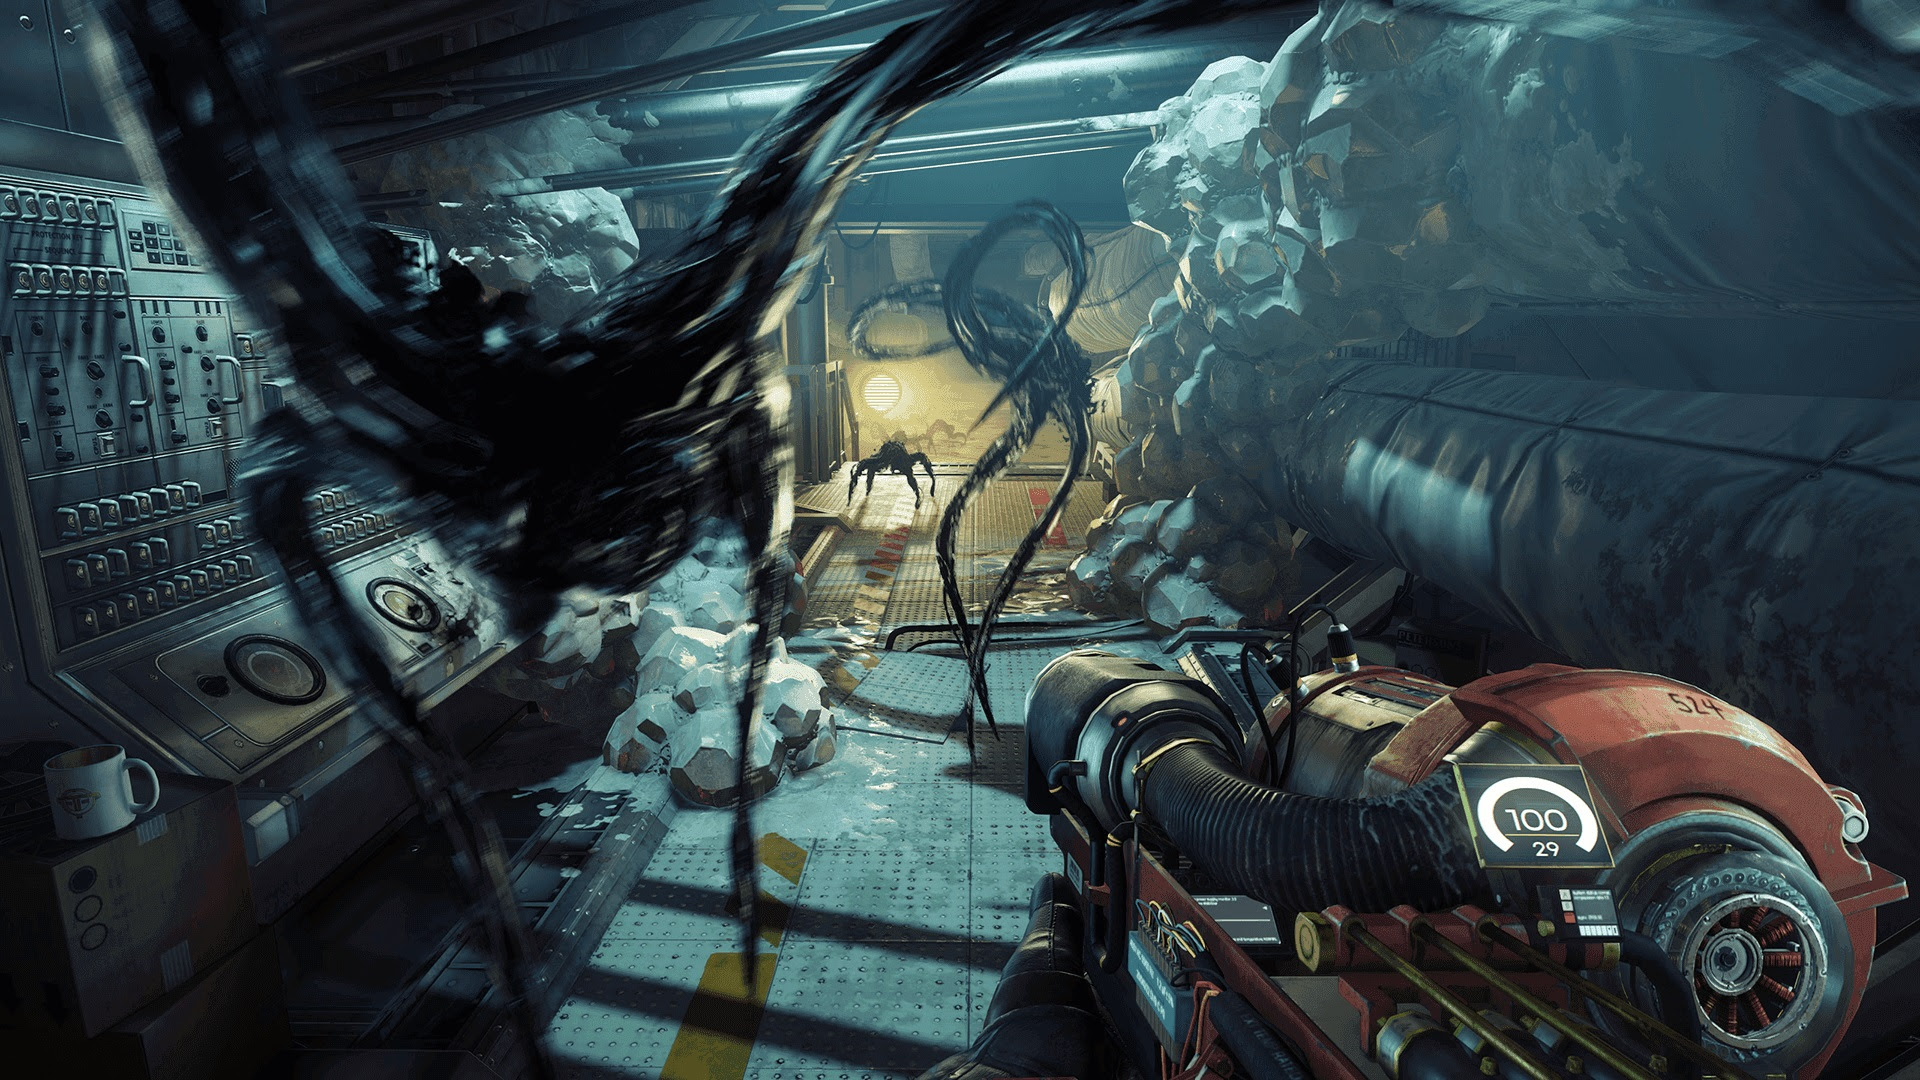 Prey speedrunner sets sub-seven minute world record screenshot